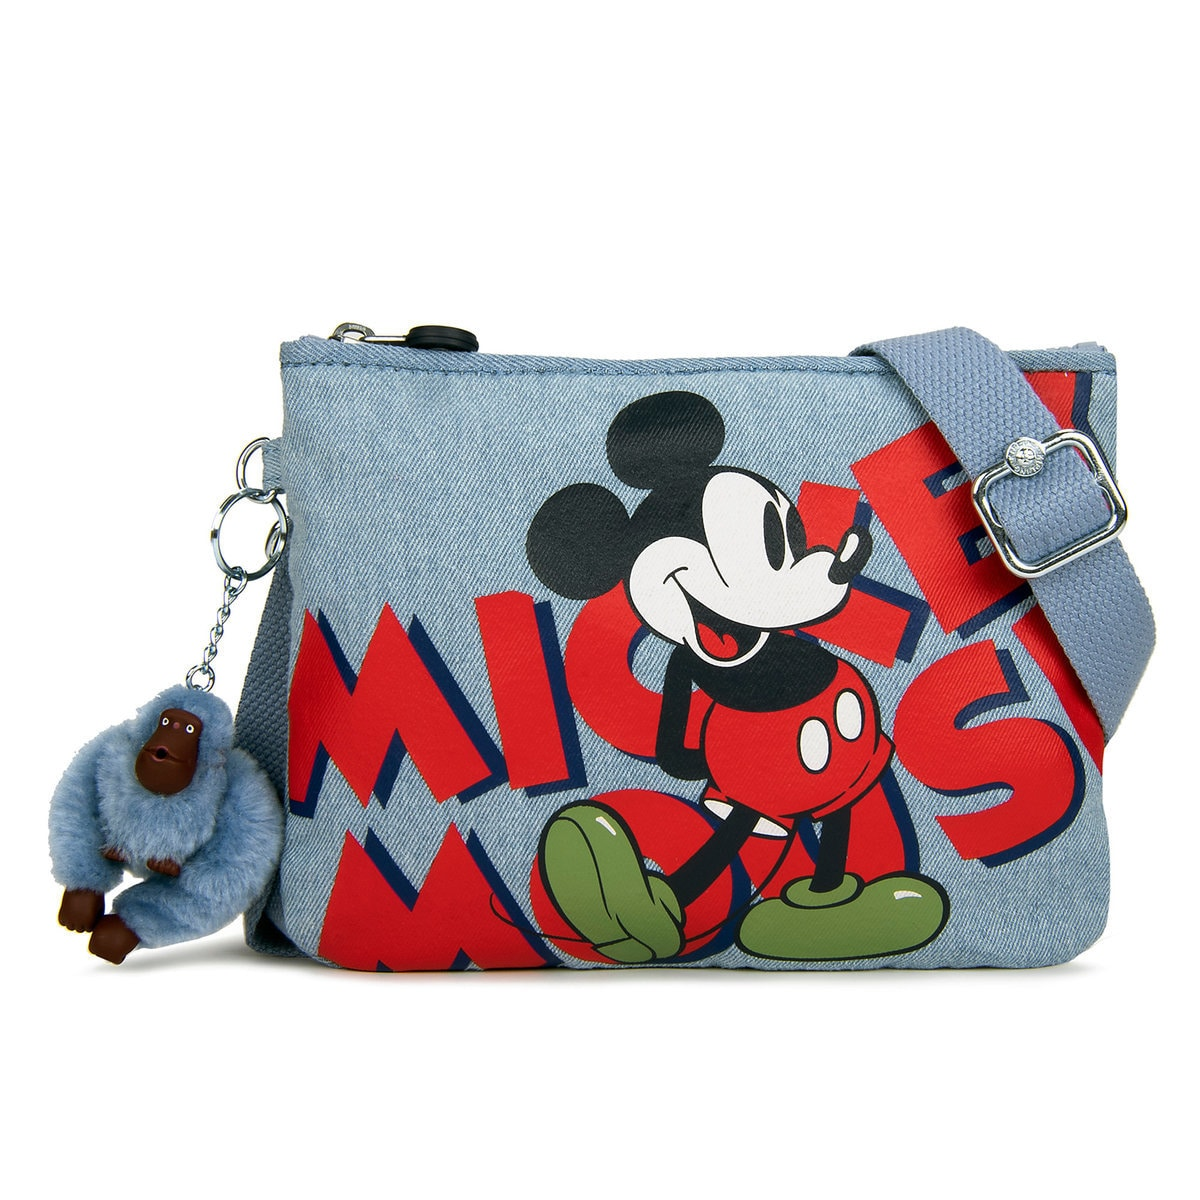 ec78d2ce8f4 Product Image of Mickey Mouse Crossbody Bag by Kipling # 1